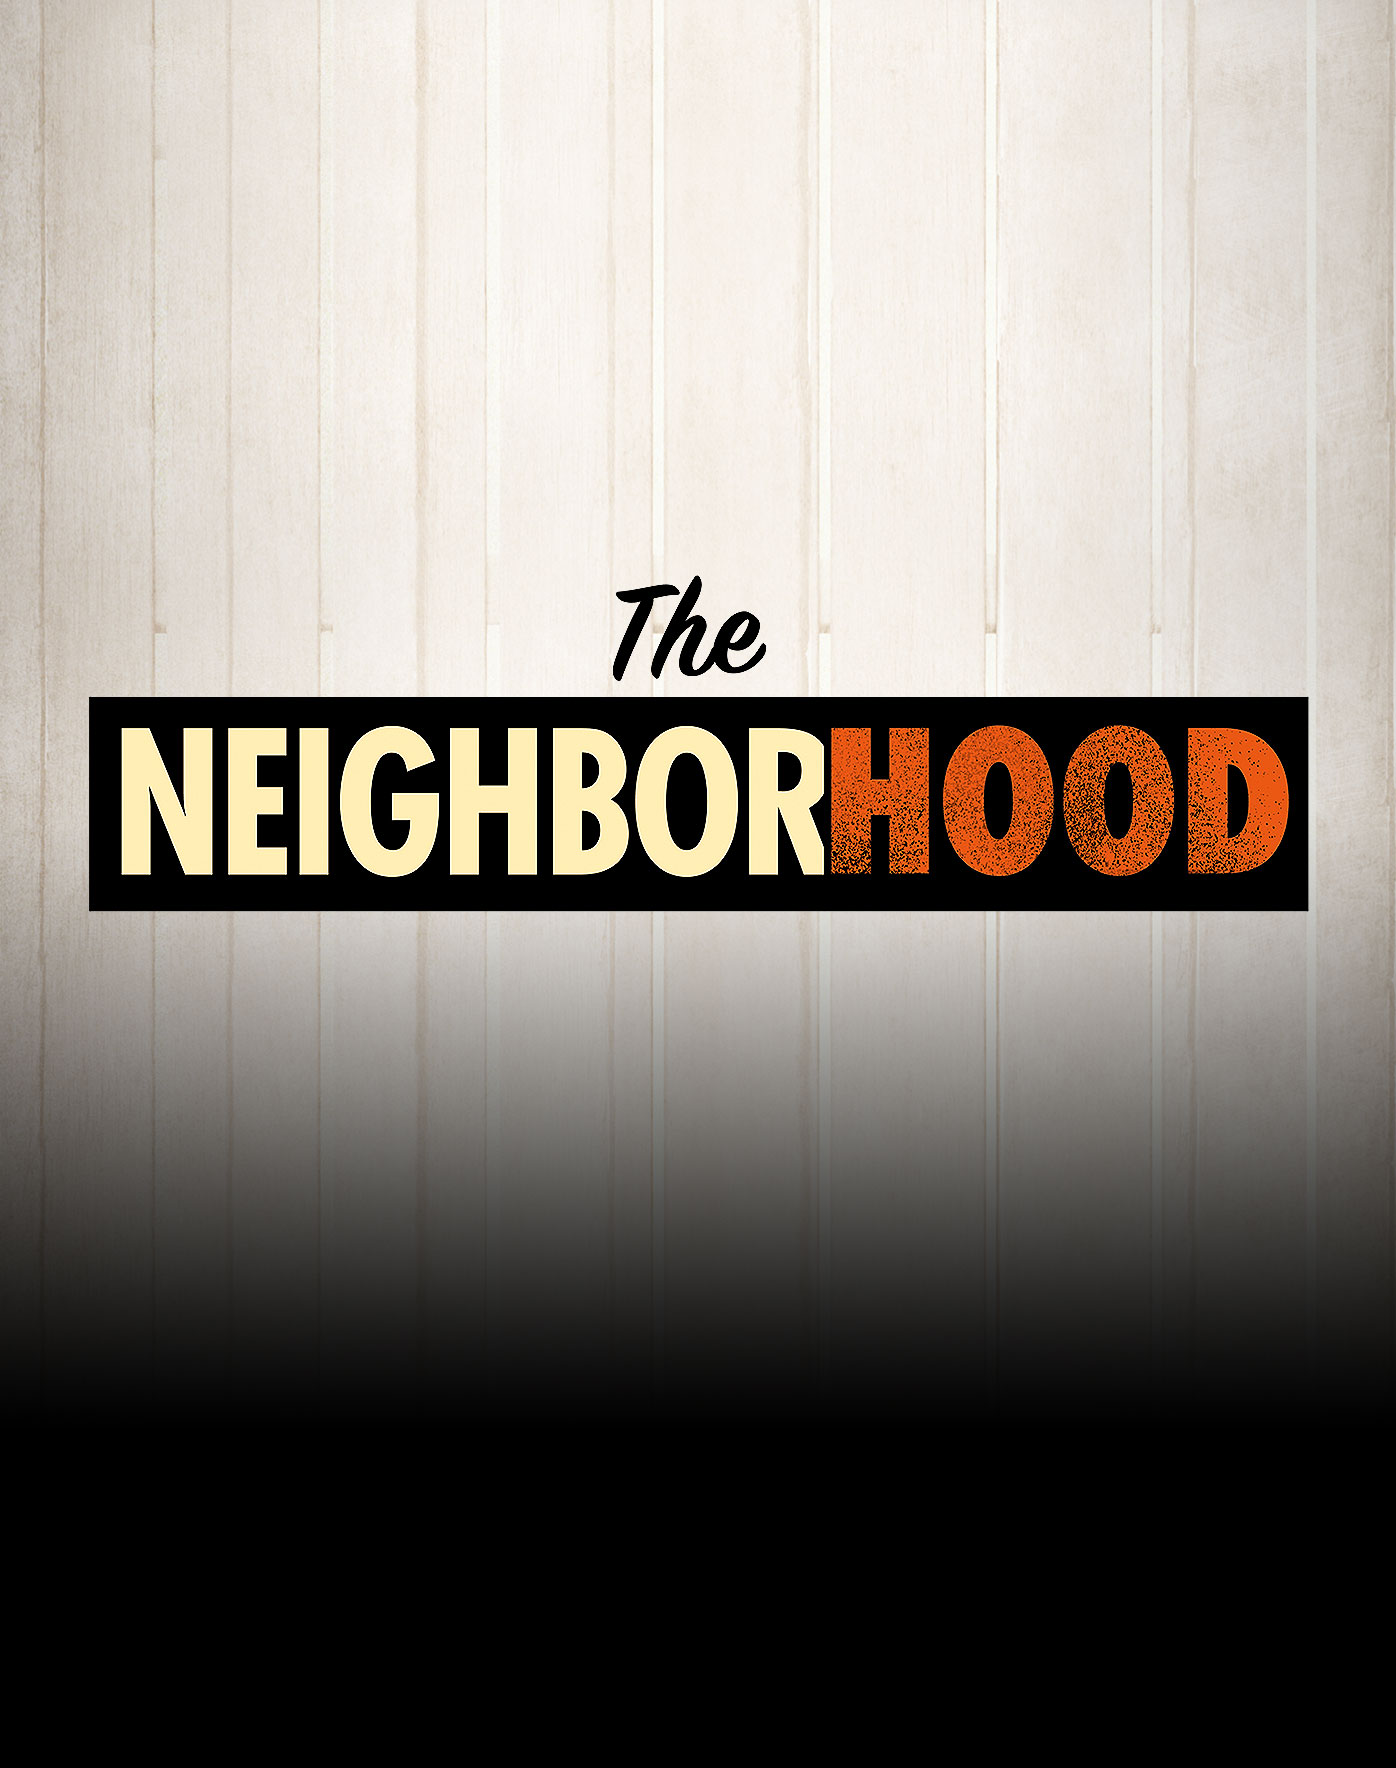 The Neighborhood